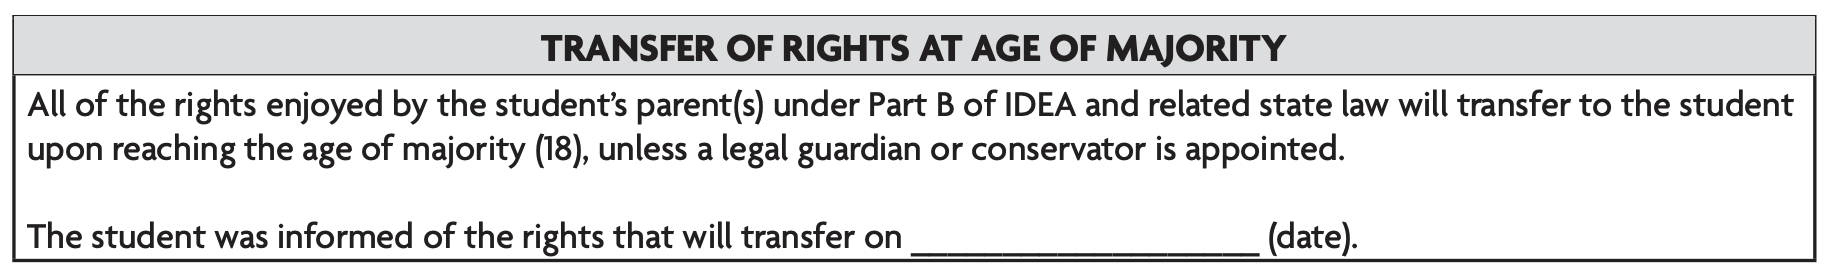 Image text: All of the rights enjoyed by the student's parent(s) under Part B of IDEA and related state law will transfer to the student upon reaching the age of majority (18), unless a legal guardian or conservator is appointed. The student was informed of the rights that will transfer on _______ (date).